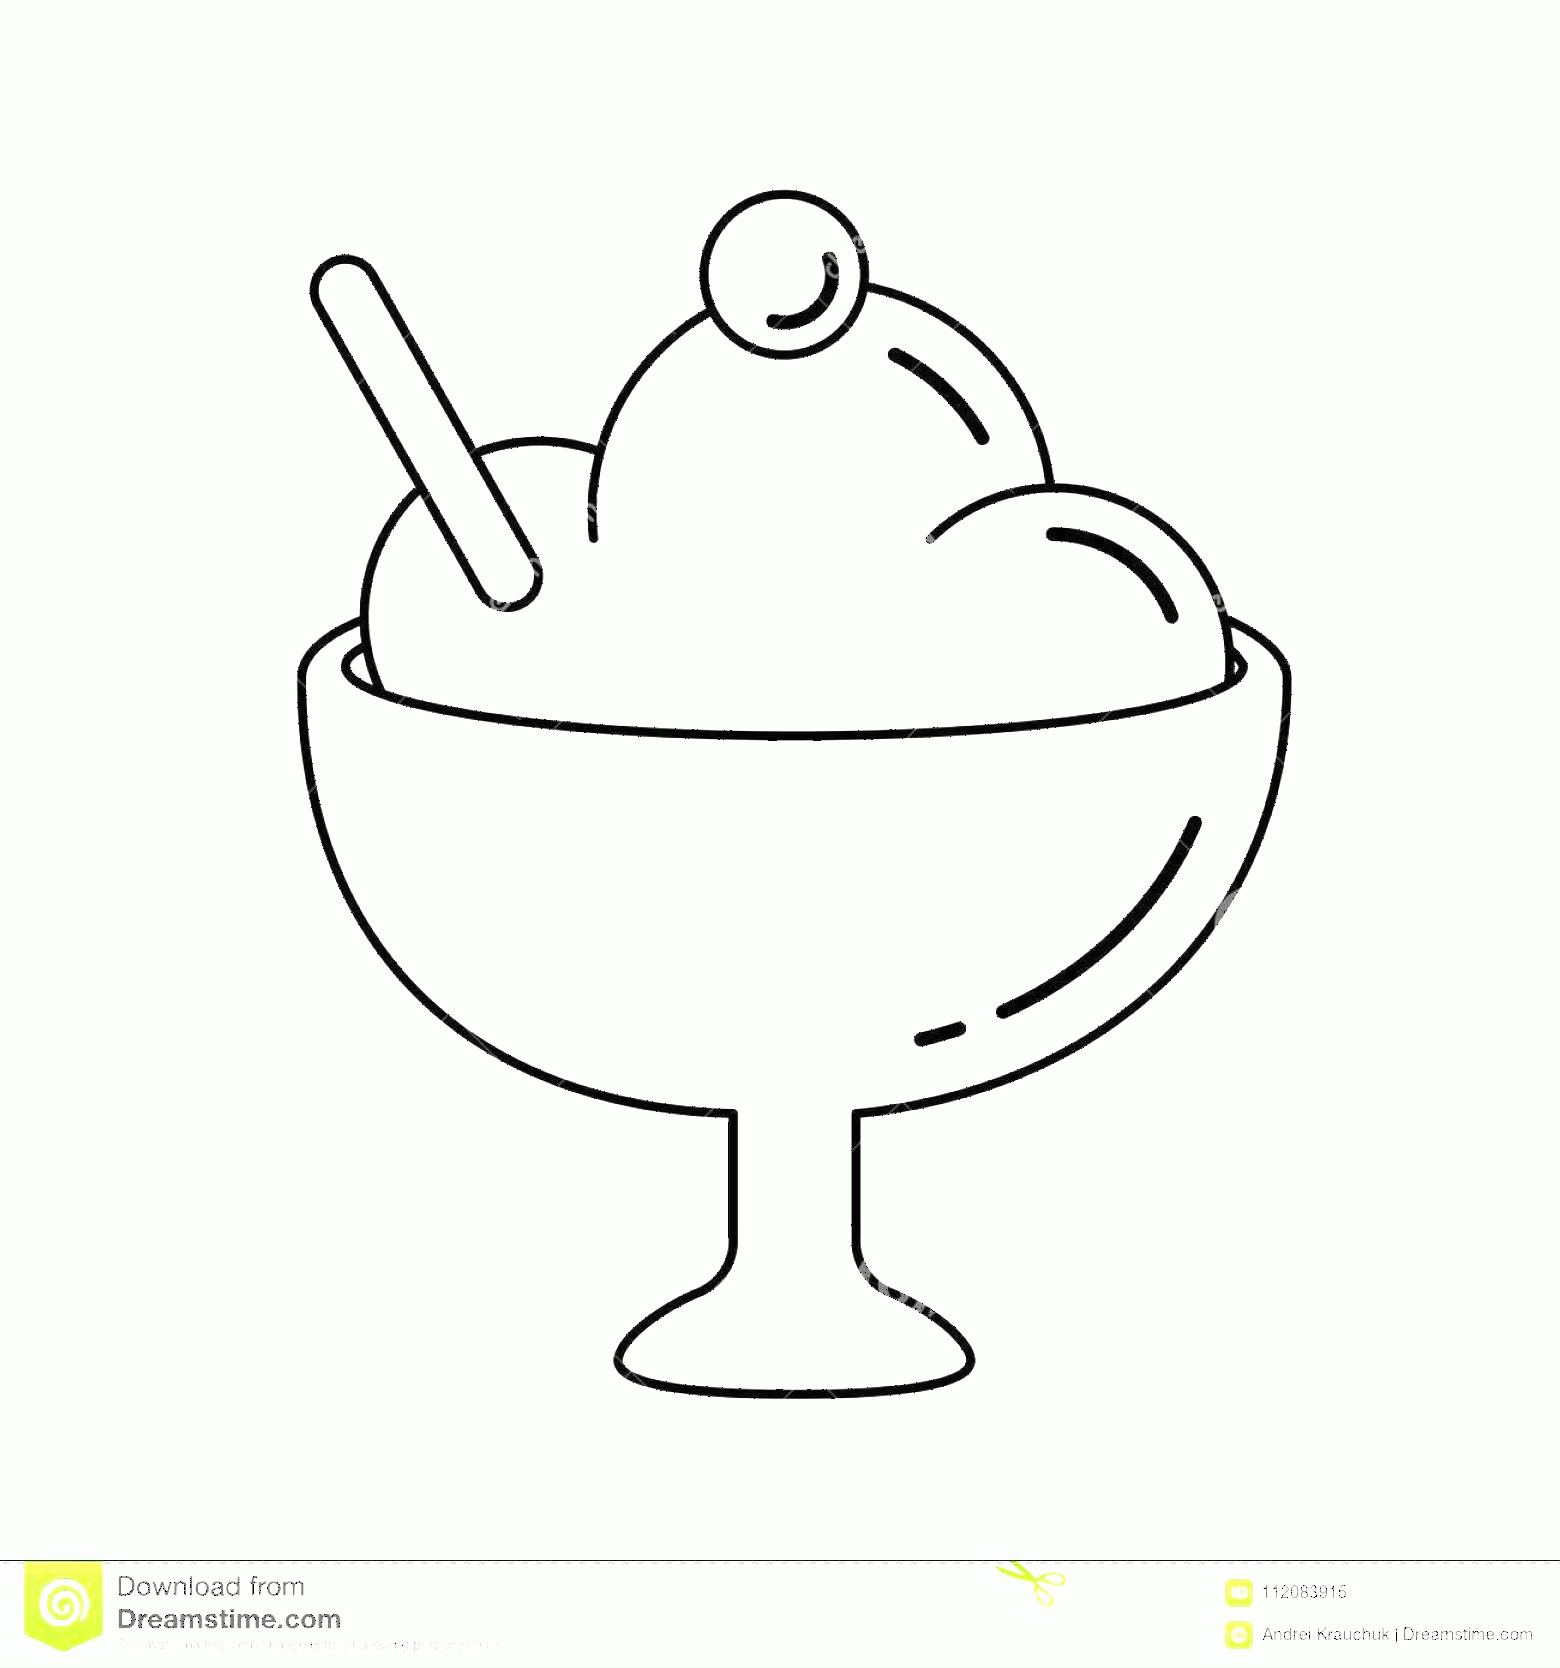 Black Cup Ice Cream Vector: Ice Cream Vector Line Icon Ice Cream Vector Line Icon Isolated White Background Cup Decorated Ice Cream Sorbet Line Icon Image